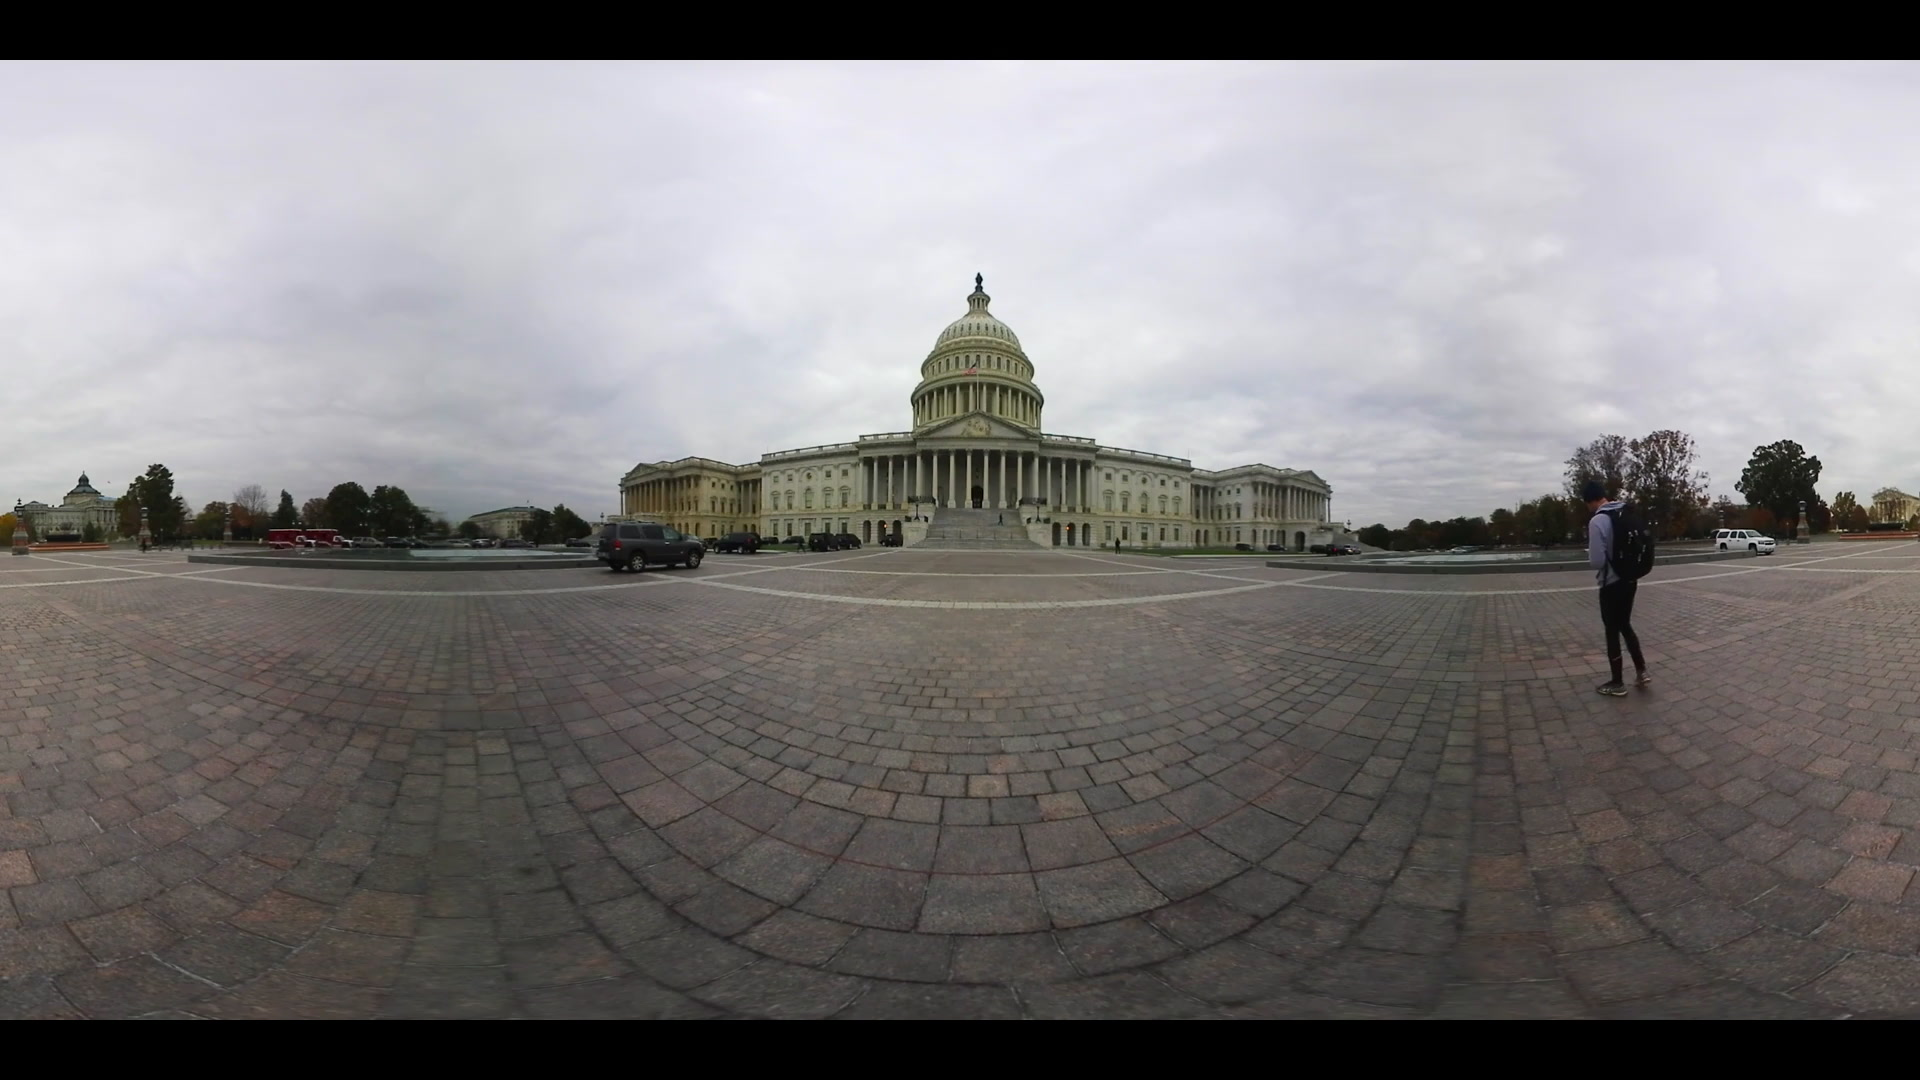 360 VR United States Capitol Building